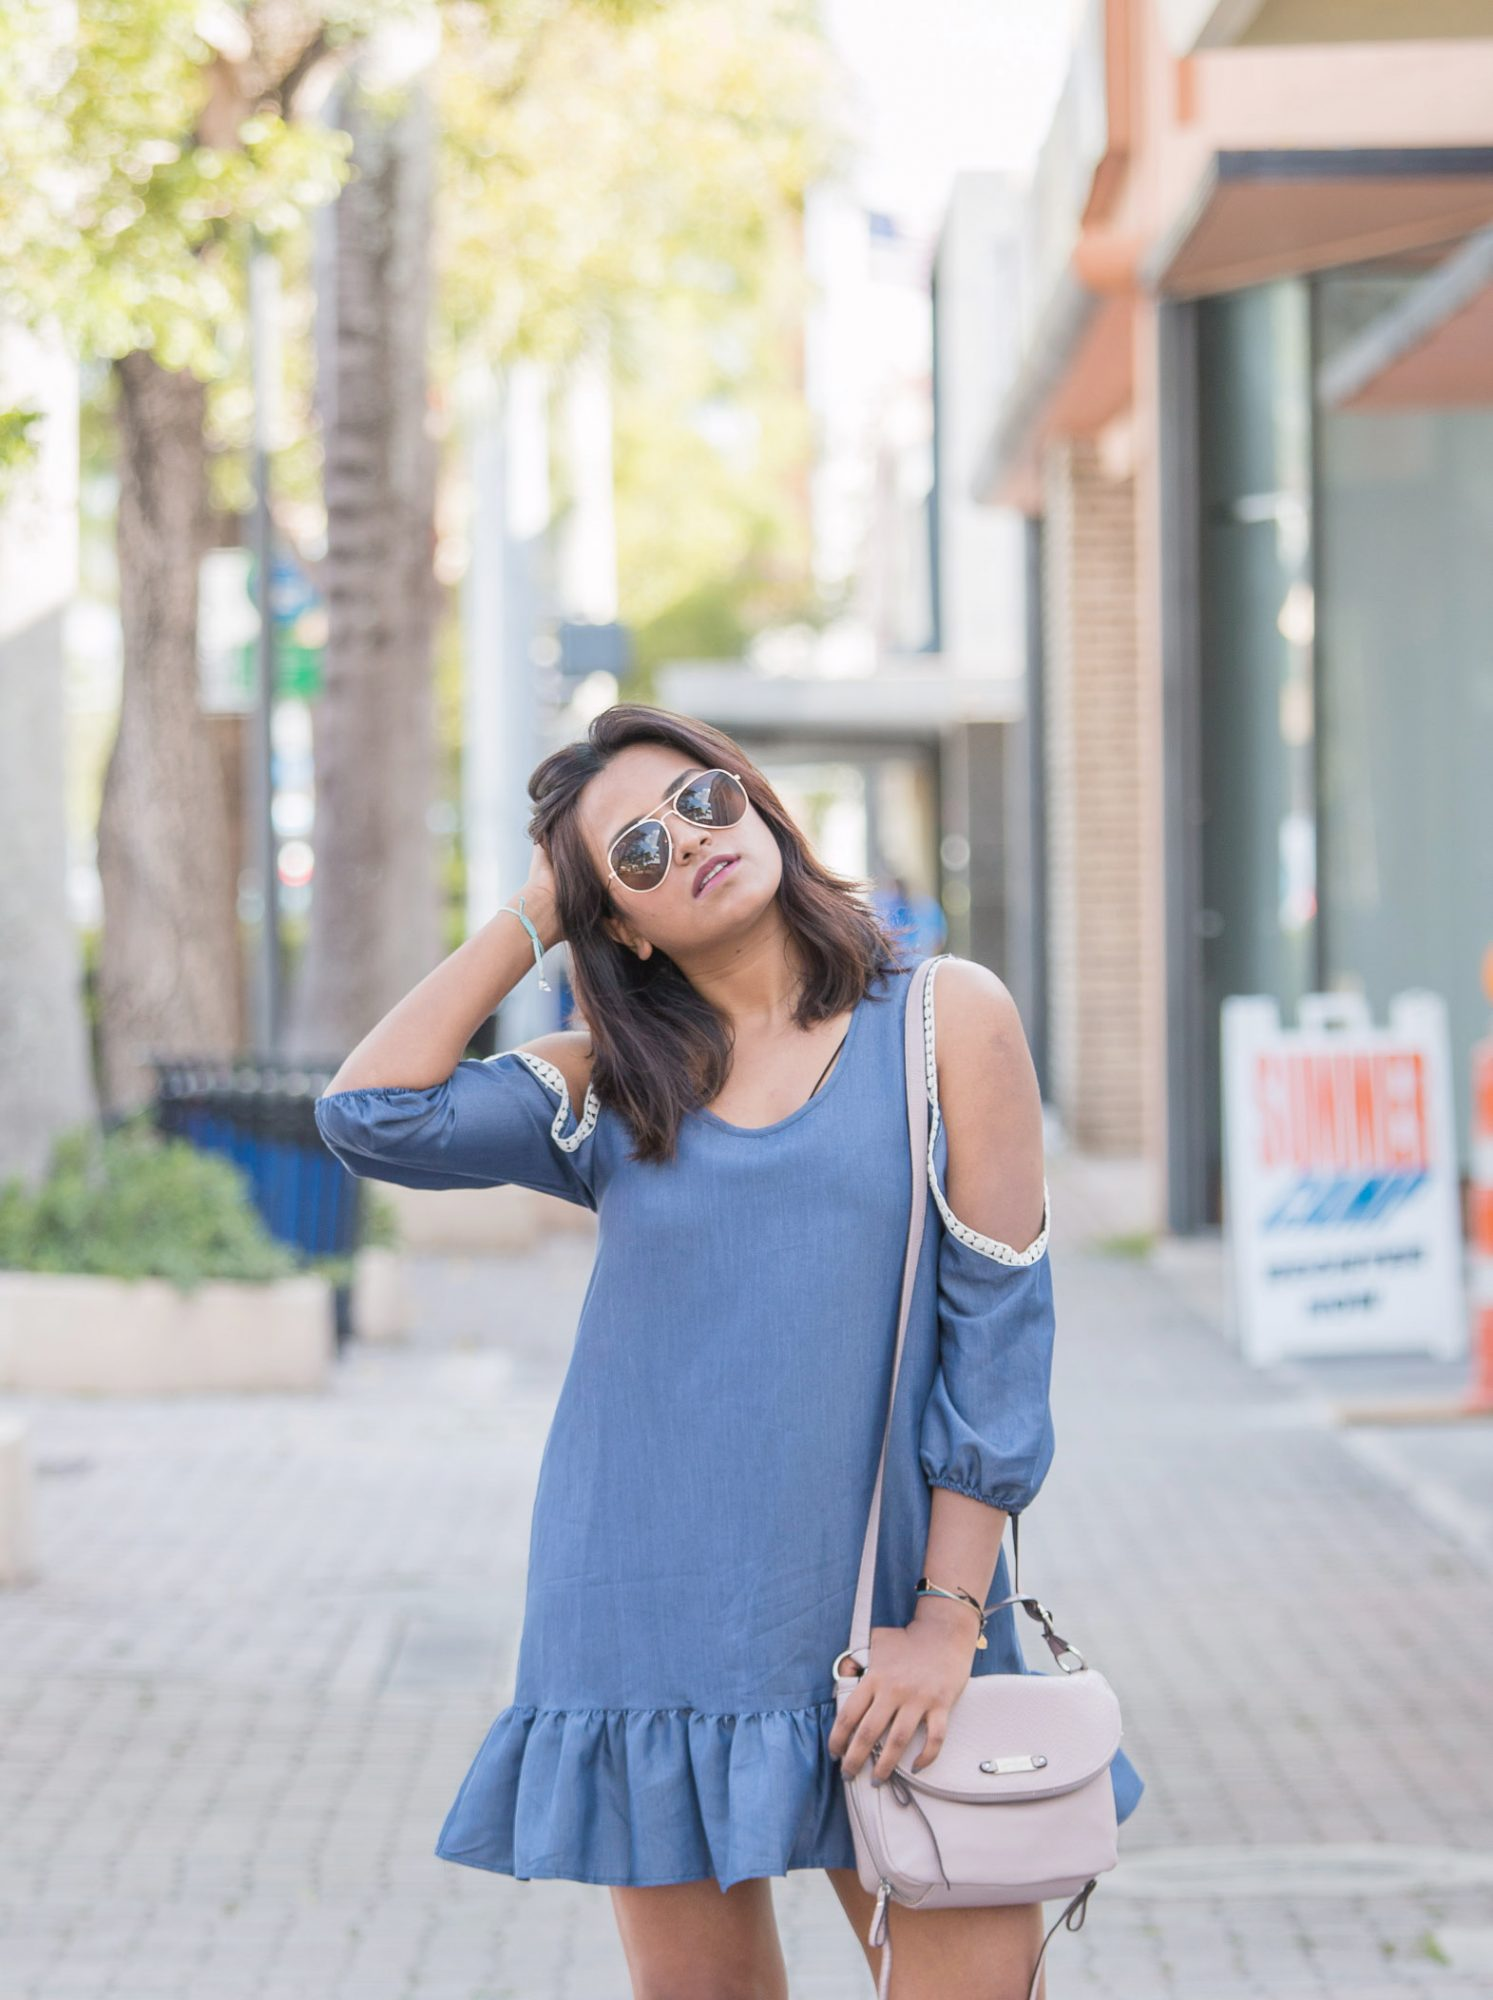 Miami Fashio Blogger Chic Stylista Top Influencer